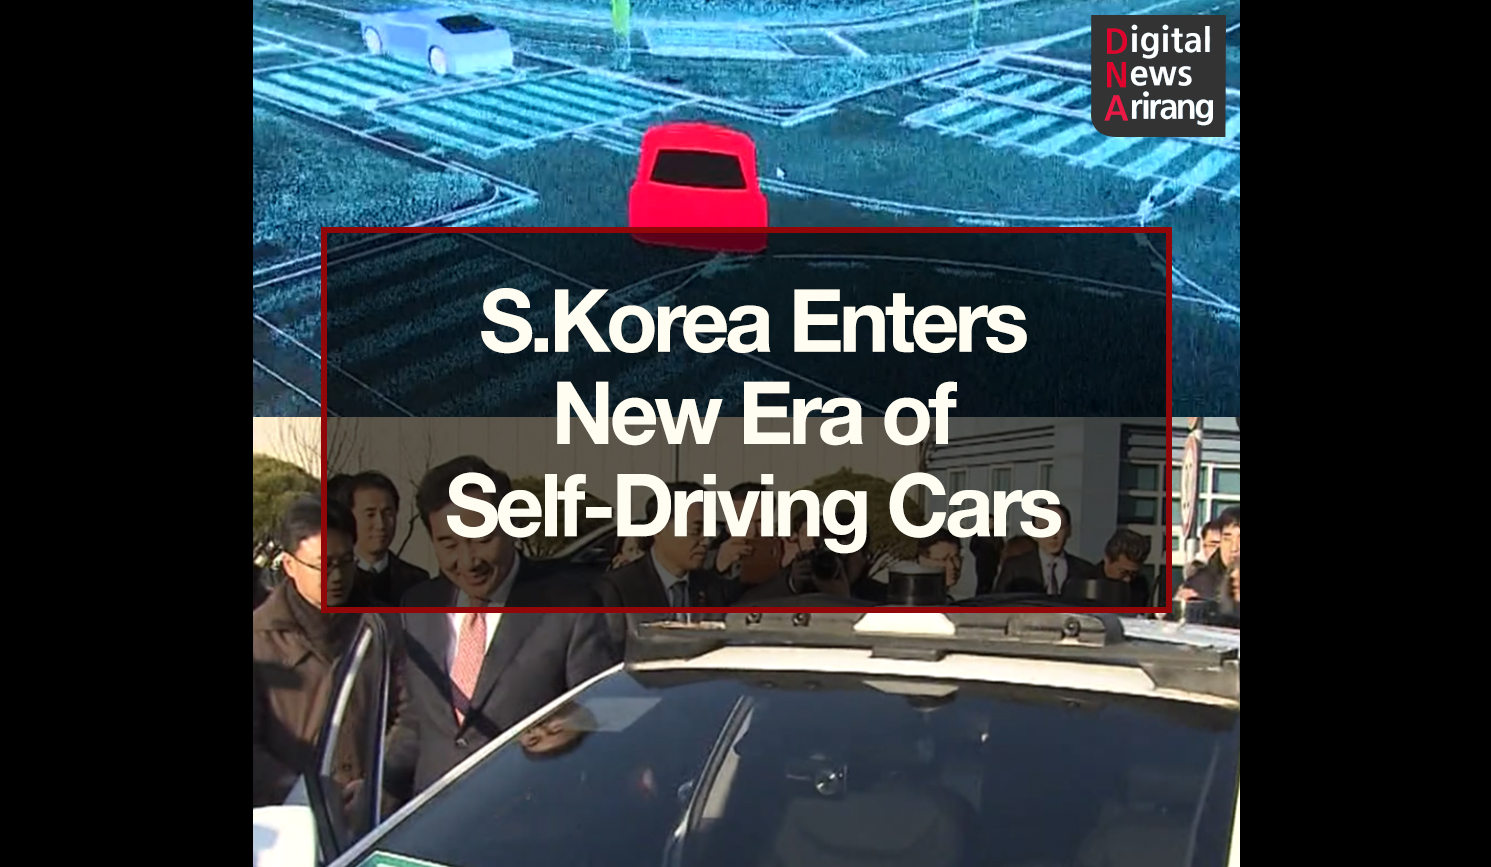 [DNA] S.Korea Enters New Era of Self-Driving Cars